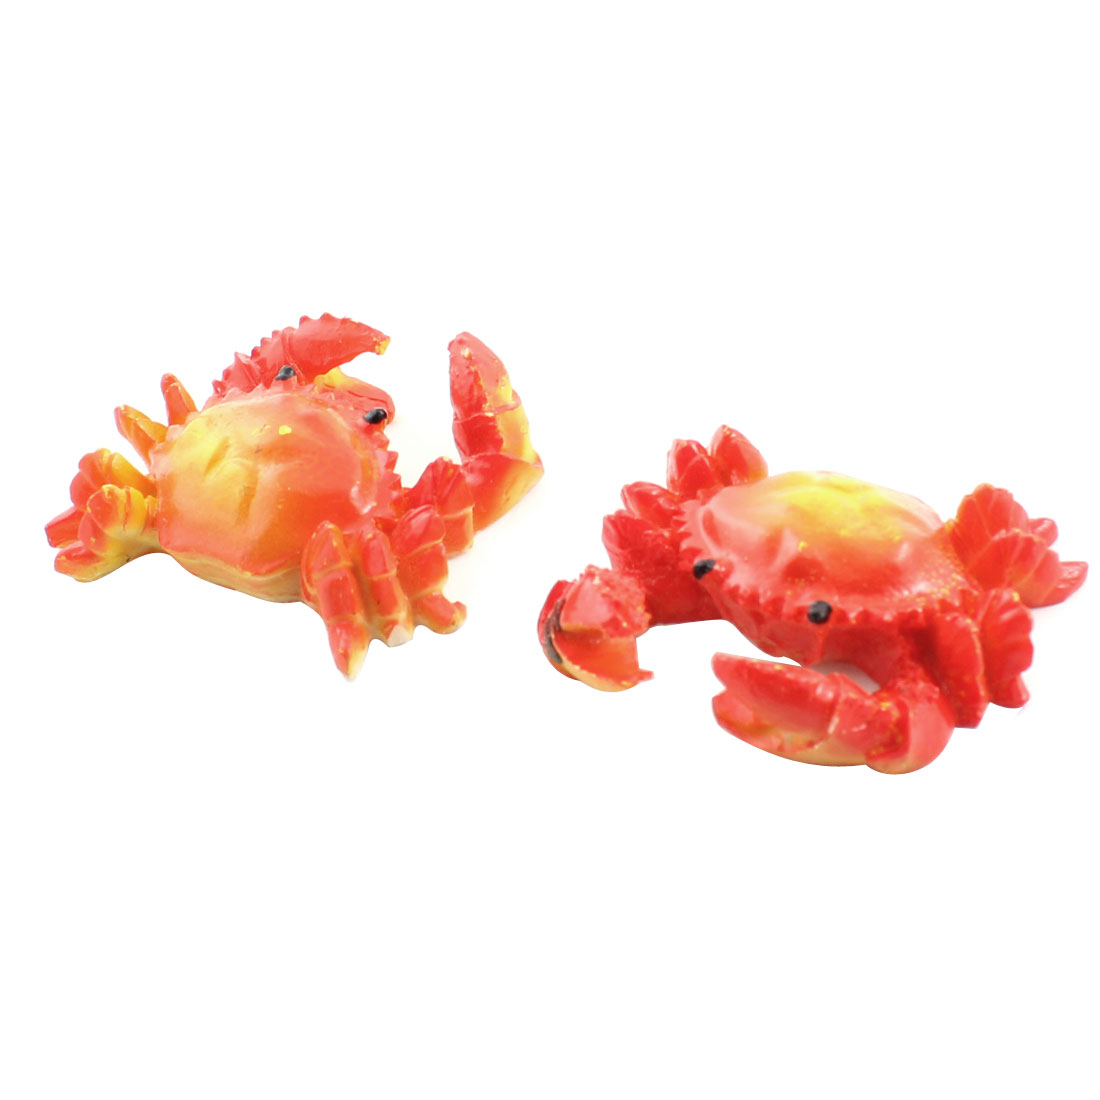 Aquarium Fish Tank Decoration Ceramic Emulational Crab Orange Red 2 Pcs